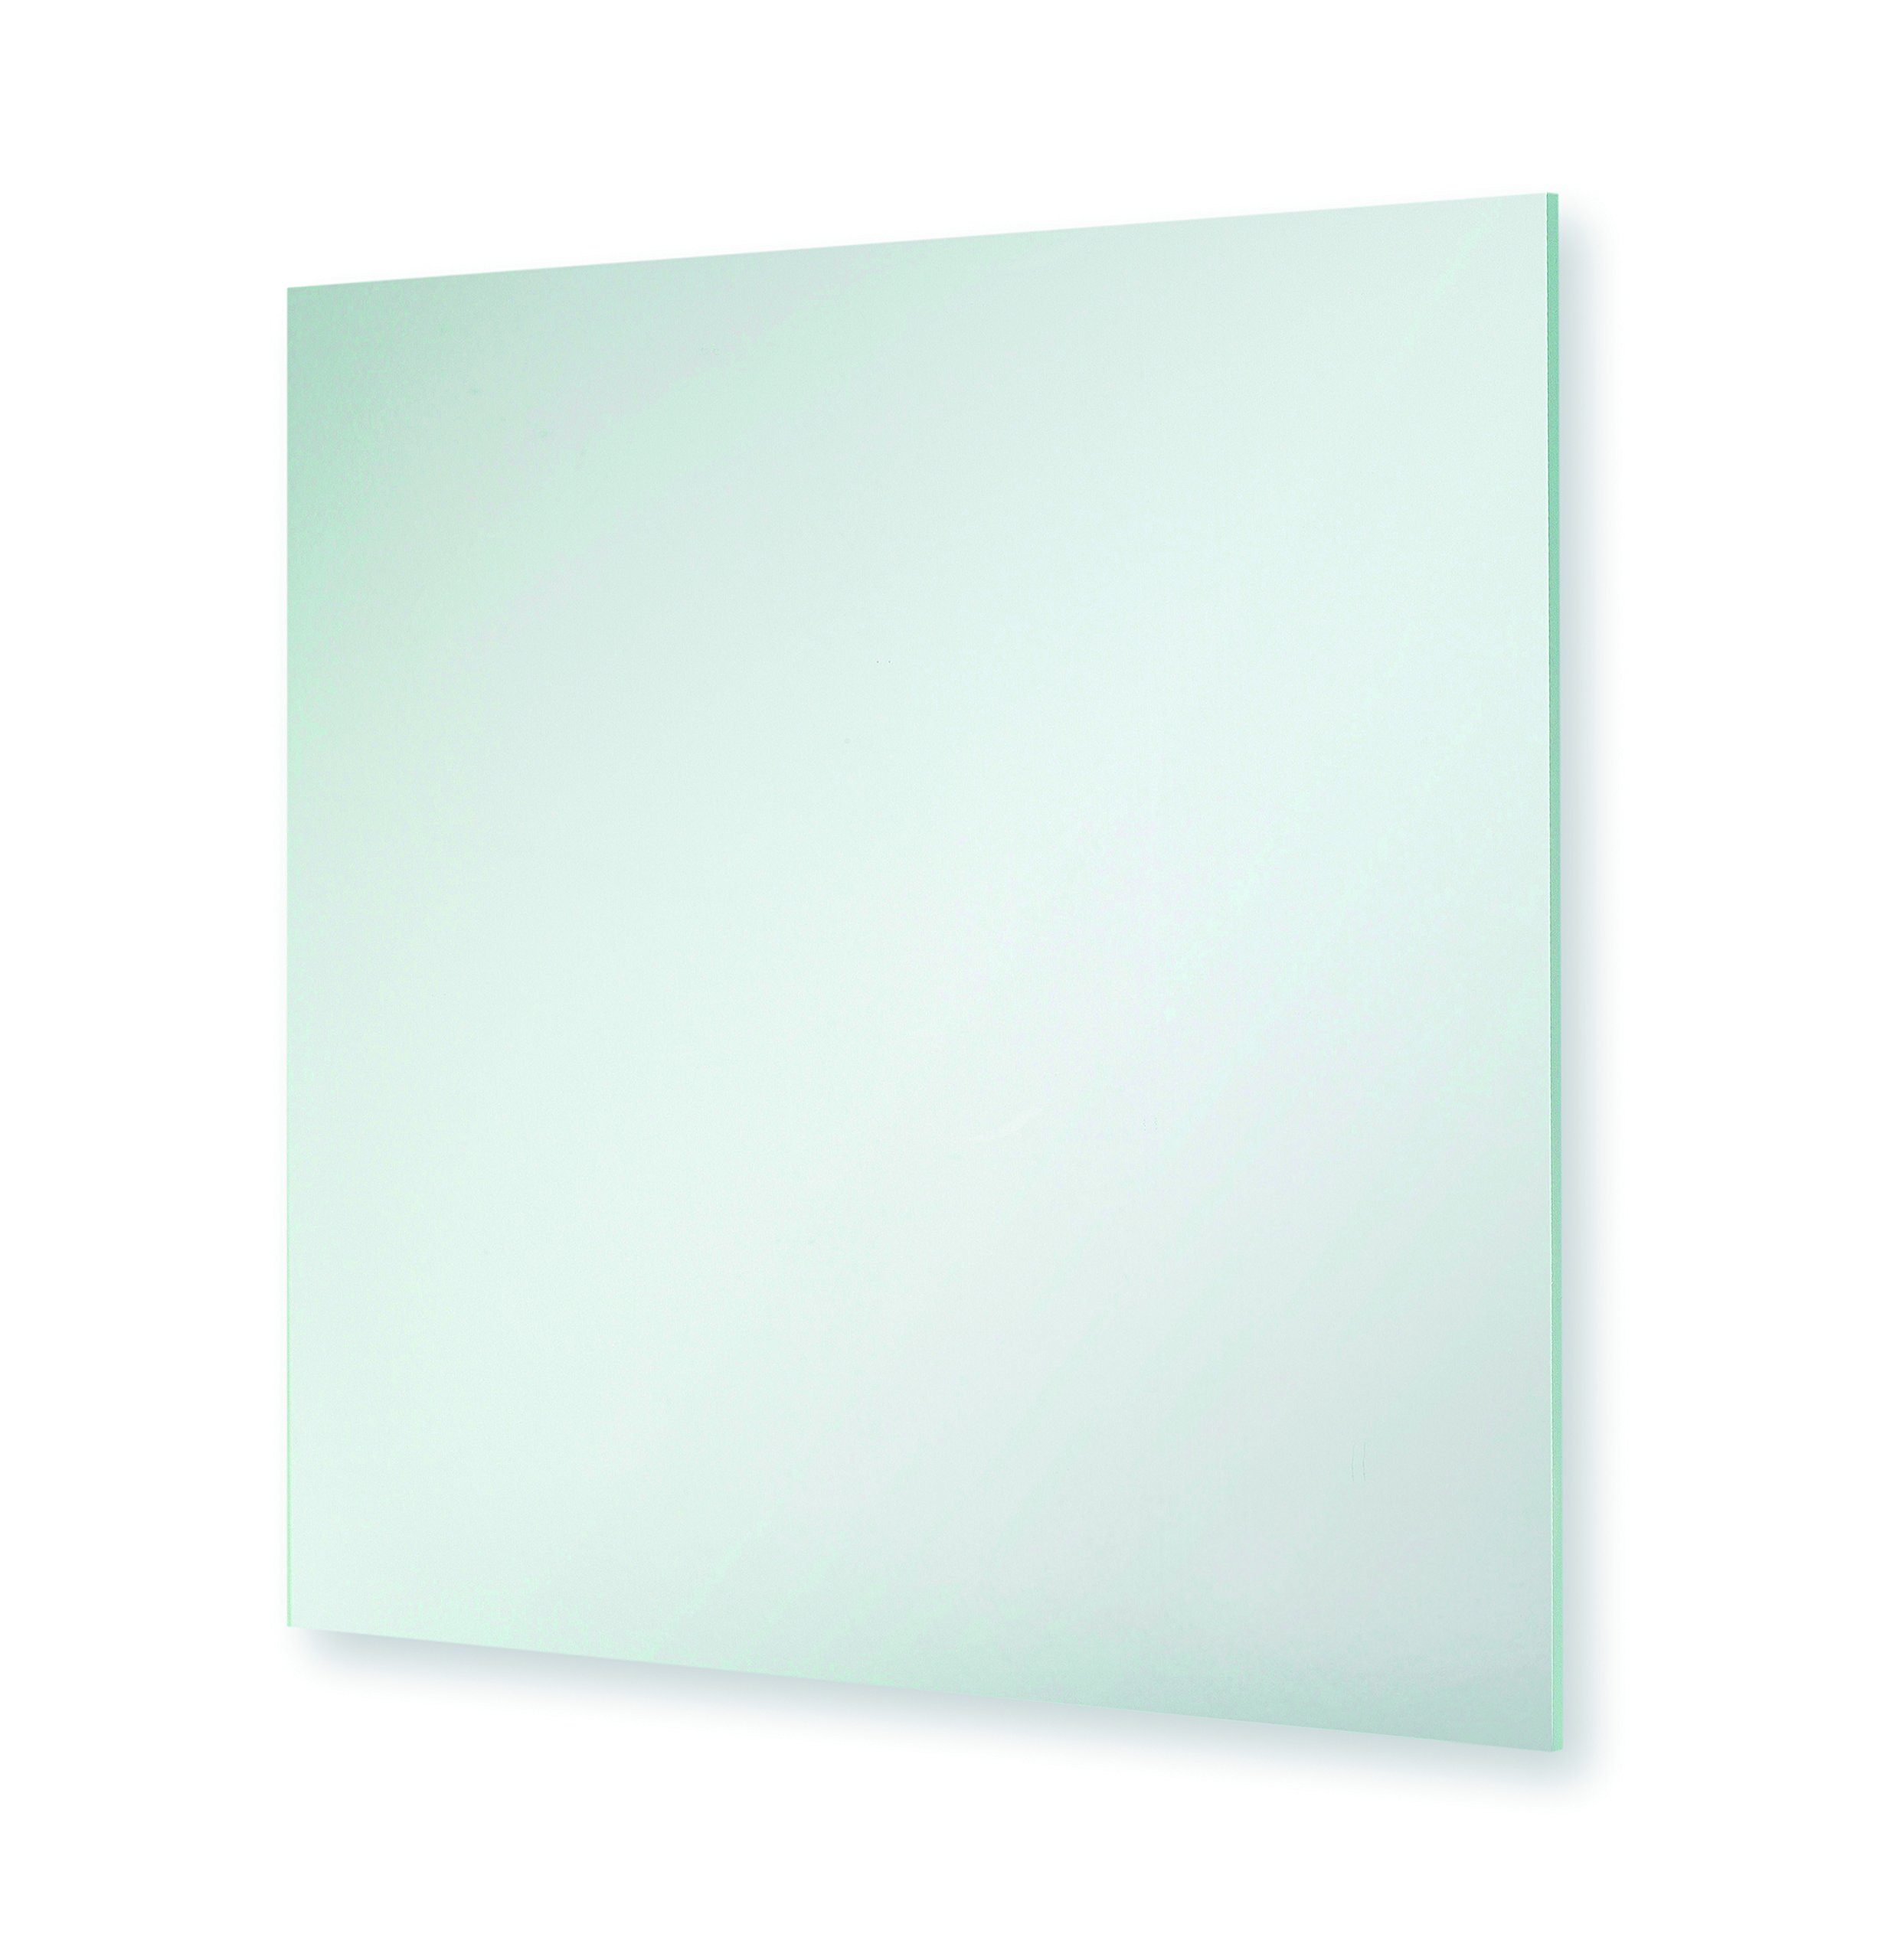 Bathroom Mantel Hall Round Square Cosmetic Shaving Mounted Mirror Frosted (Sqaure Plain 40cm x 40cm) by Blue Canyon